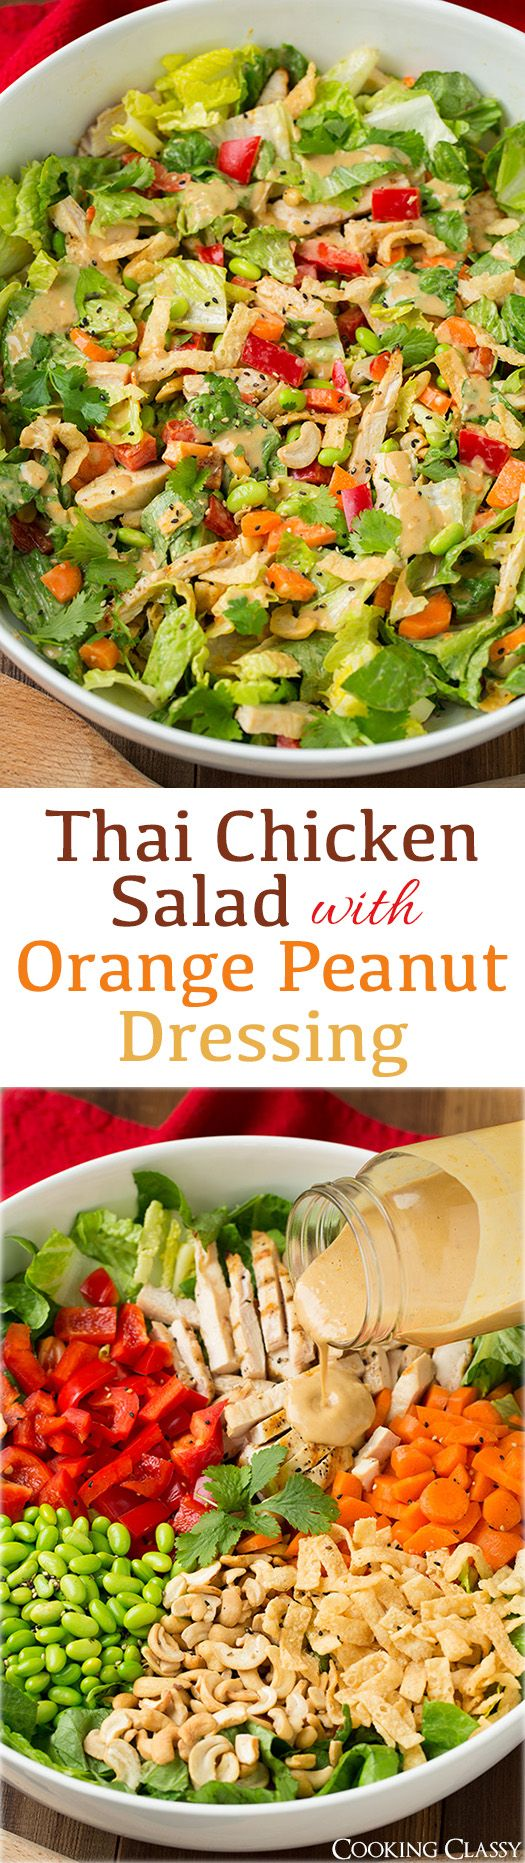 Thai Chicken Salad with Orange Peanut Dressing - this salad was seriously delicious!! I'm going to crave it all the time now! Romaine, grilled chicken, edamame, red bell, carrots, cashews, cilantro and wonton strips with an amazing peanut dressing!